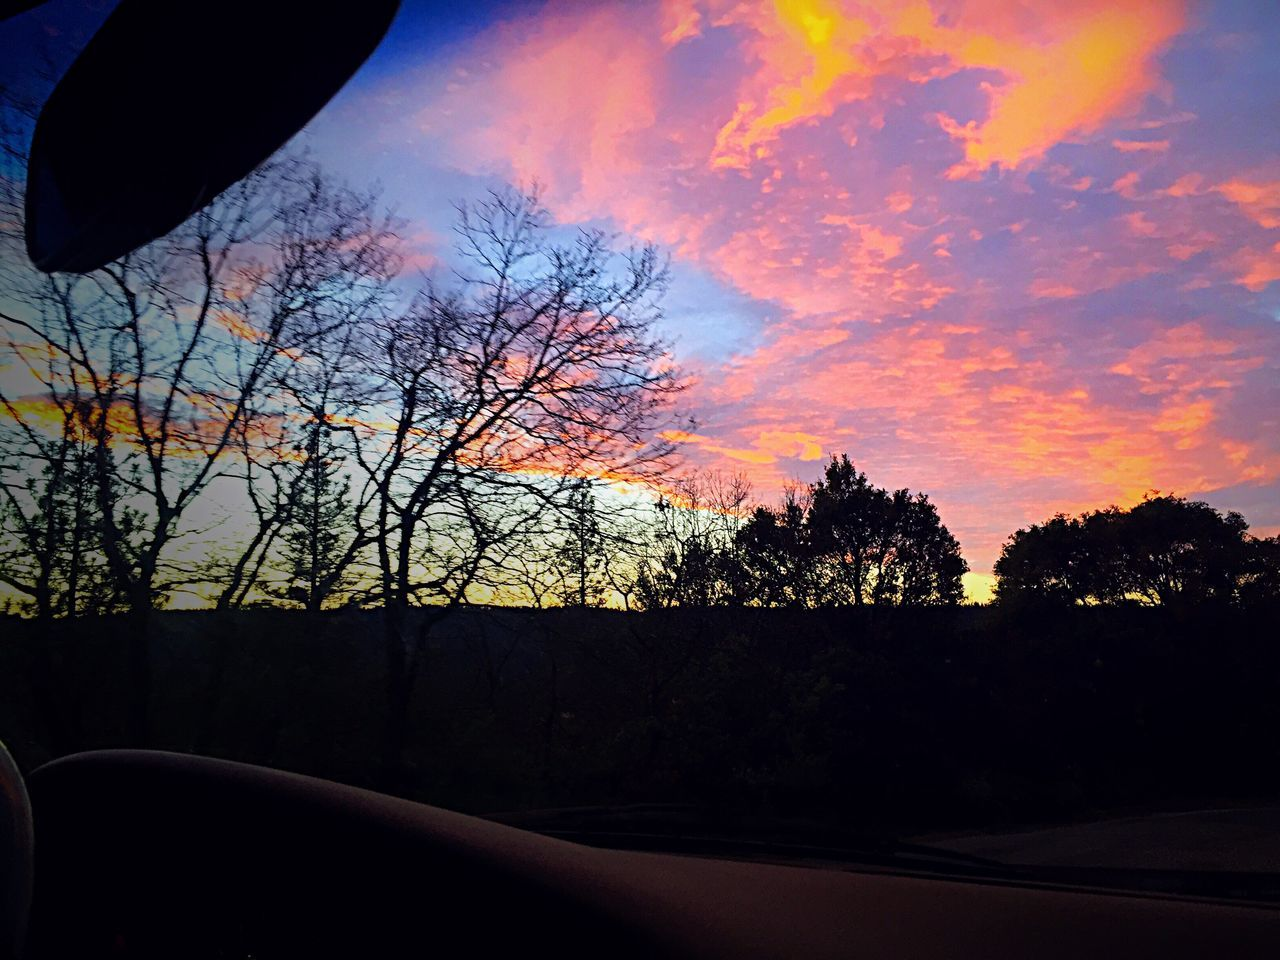 tree, sunset, silhouette, nature, sky, beauty in nature, road, car, no people, transportation, tranquil scene, scenics, bare tree, tranquility, outdoors, day